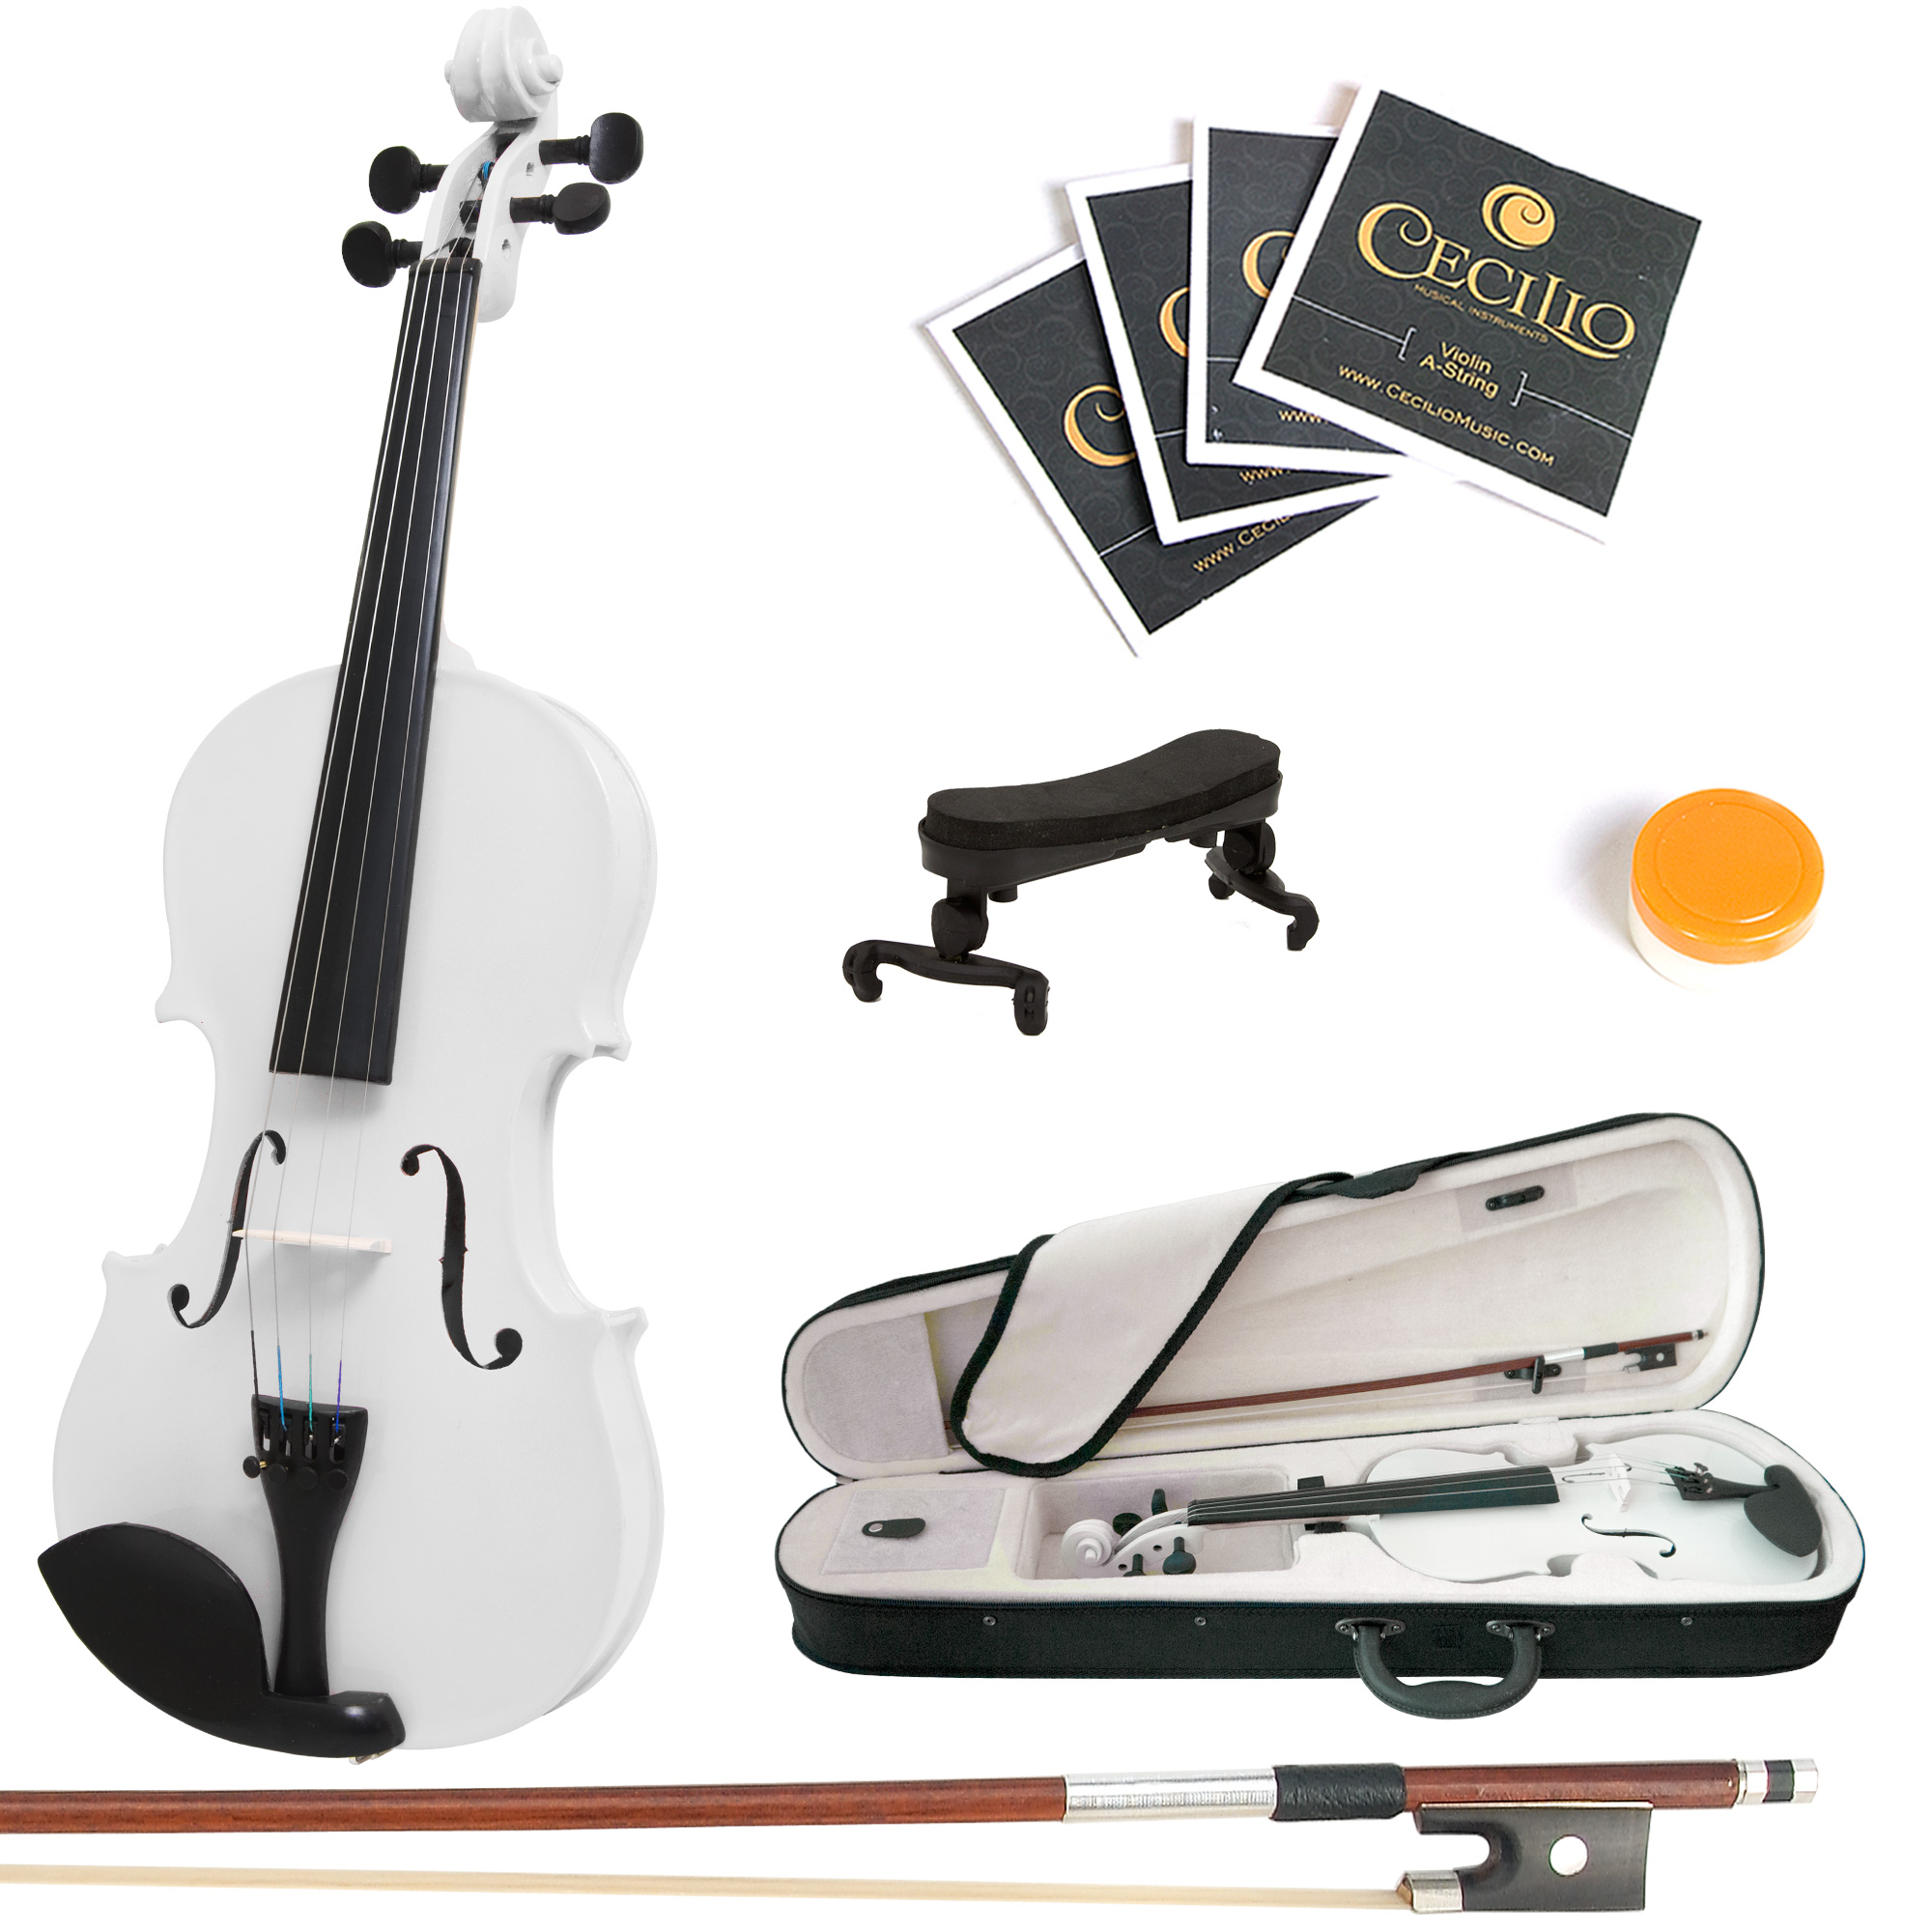 Mendini by Cecilio Size 3/4 MV-White Handcrafted Solid Wood Violin with 1 Year Warranty, Shoulder Rest, Bow, Rosin, Extra Set Strings, 2 Bridges & Case, White